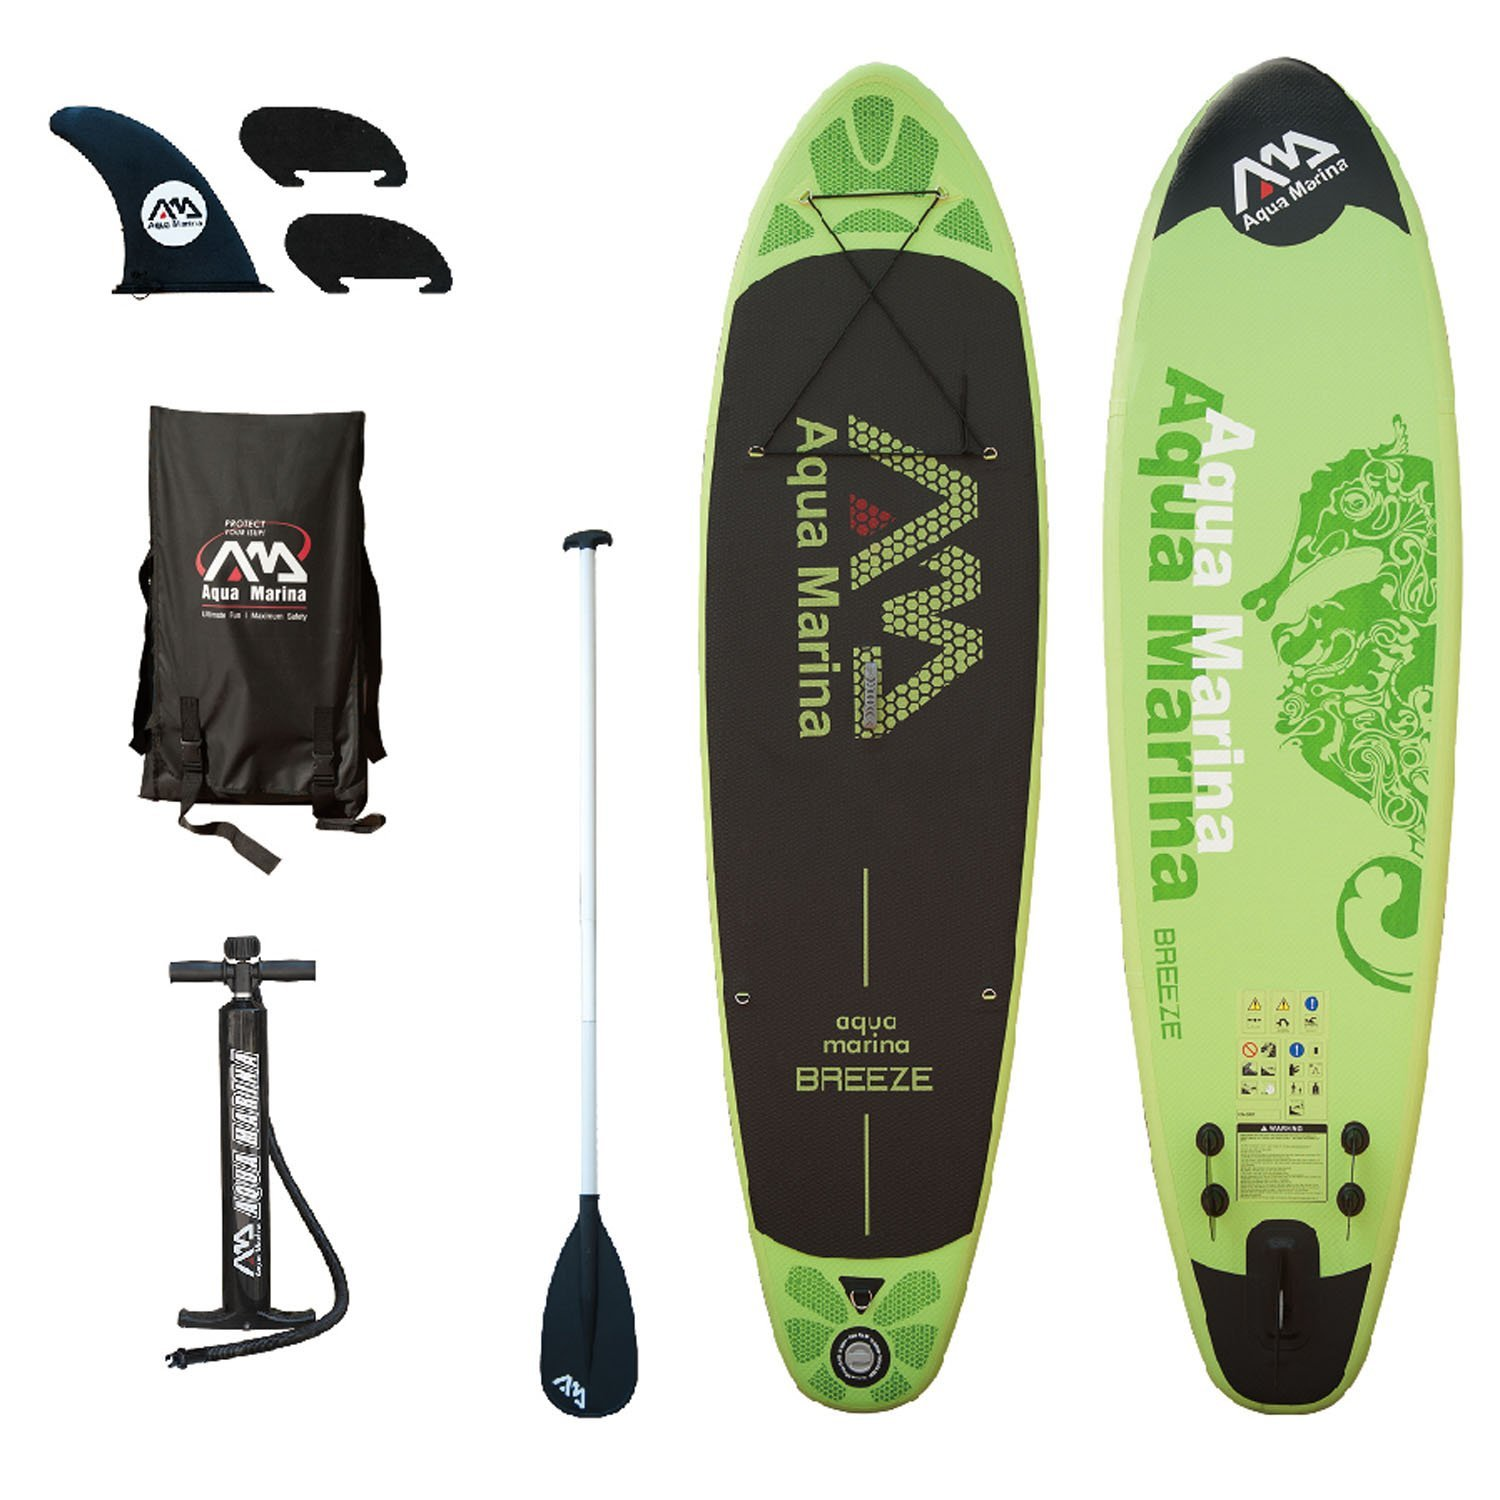 Click here to buy Aqua Marina Breeze Stand Up Paddle Board by Overstock.